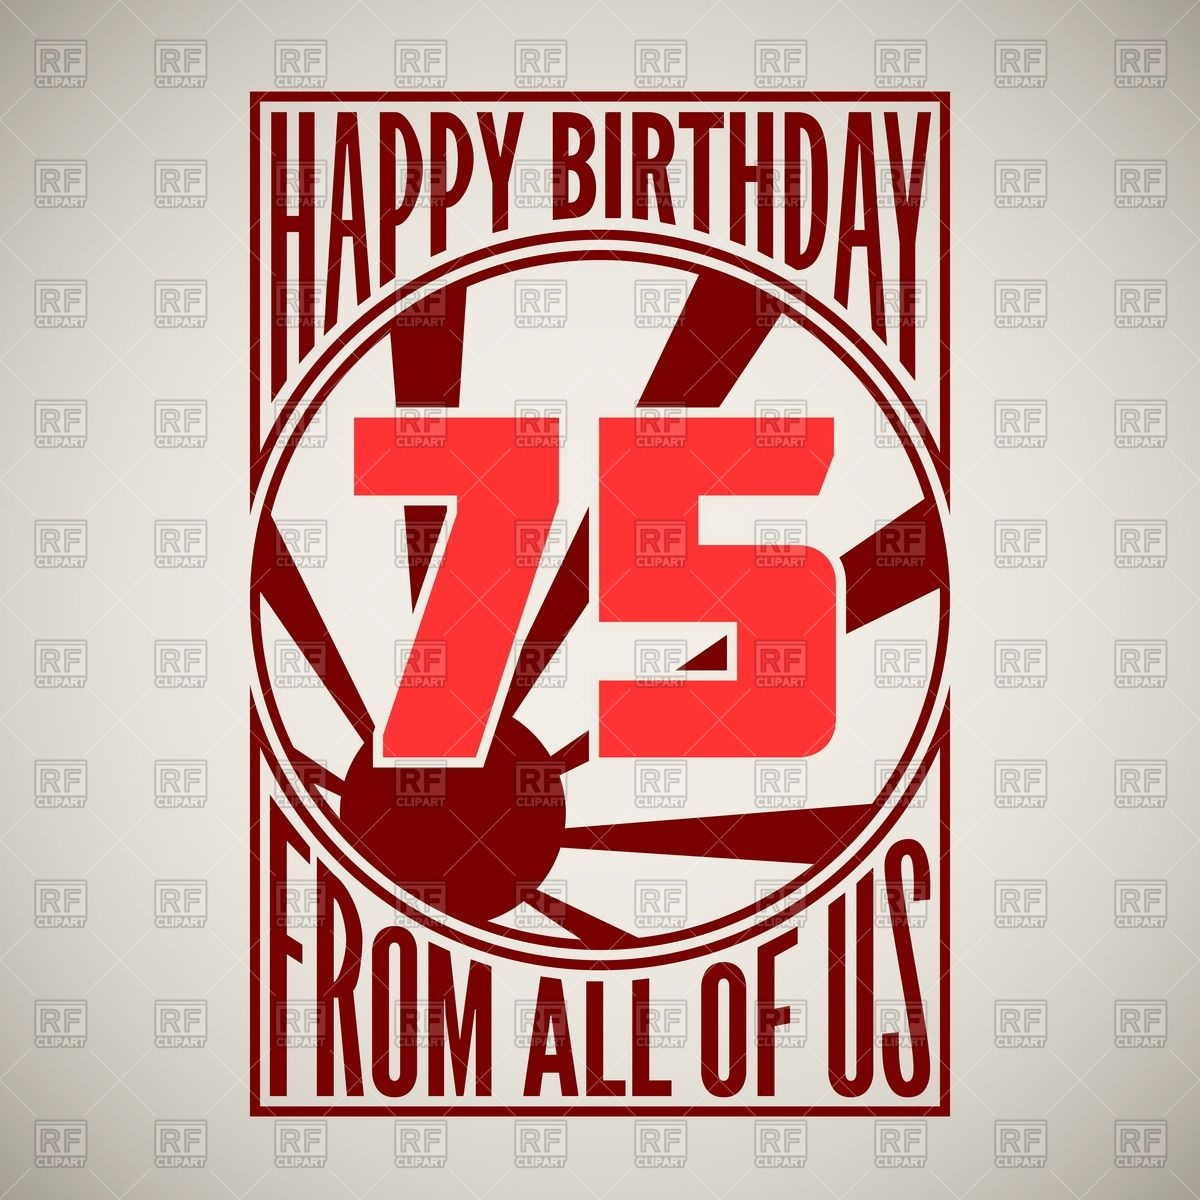 75th Anniversary   Retro Style Birthday Poster Hanging On The Wall